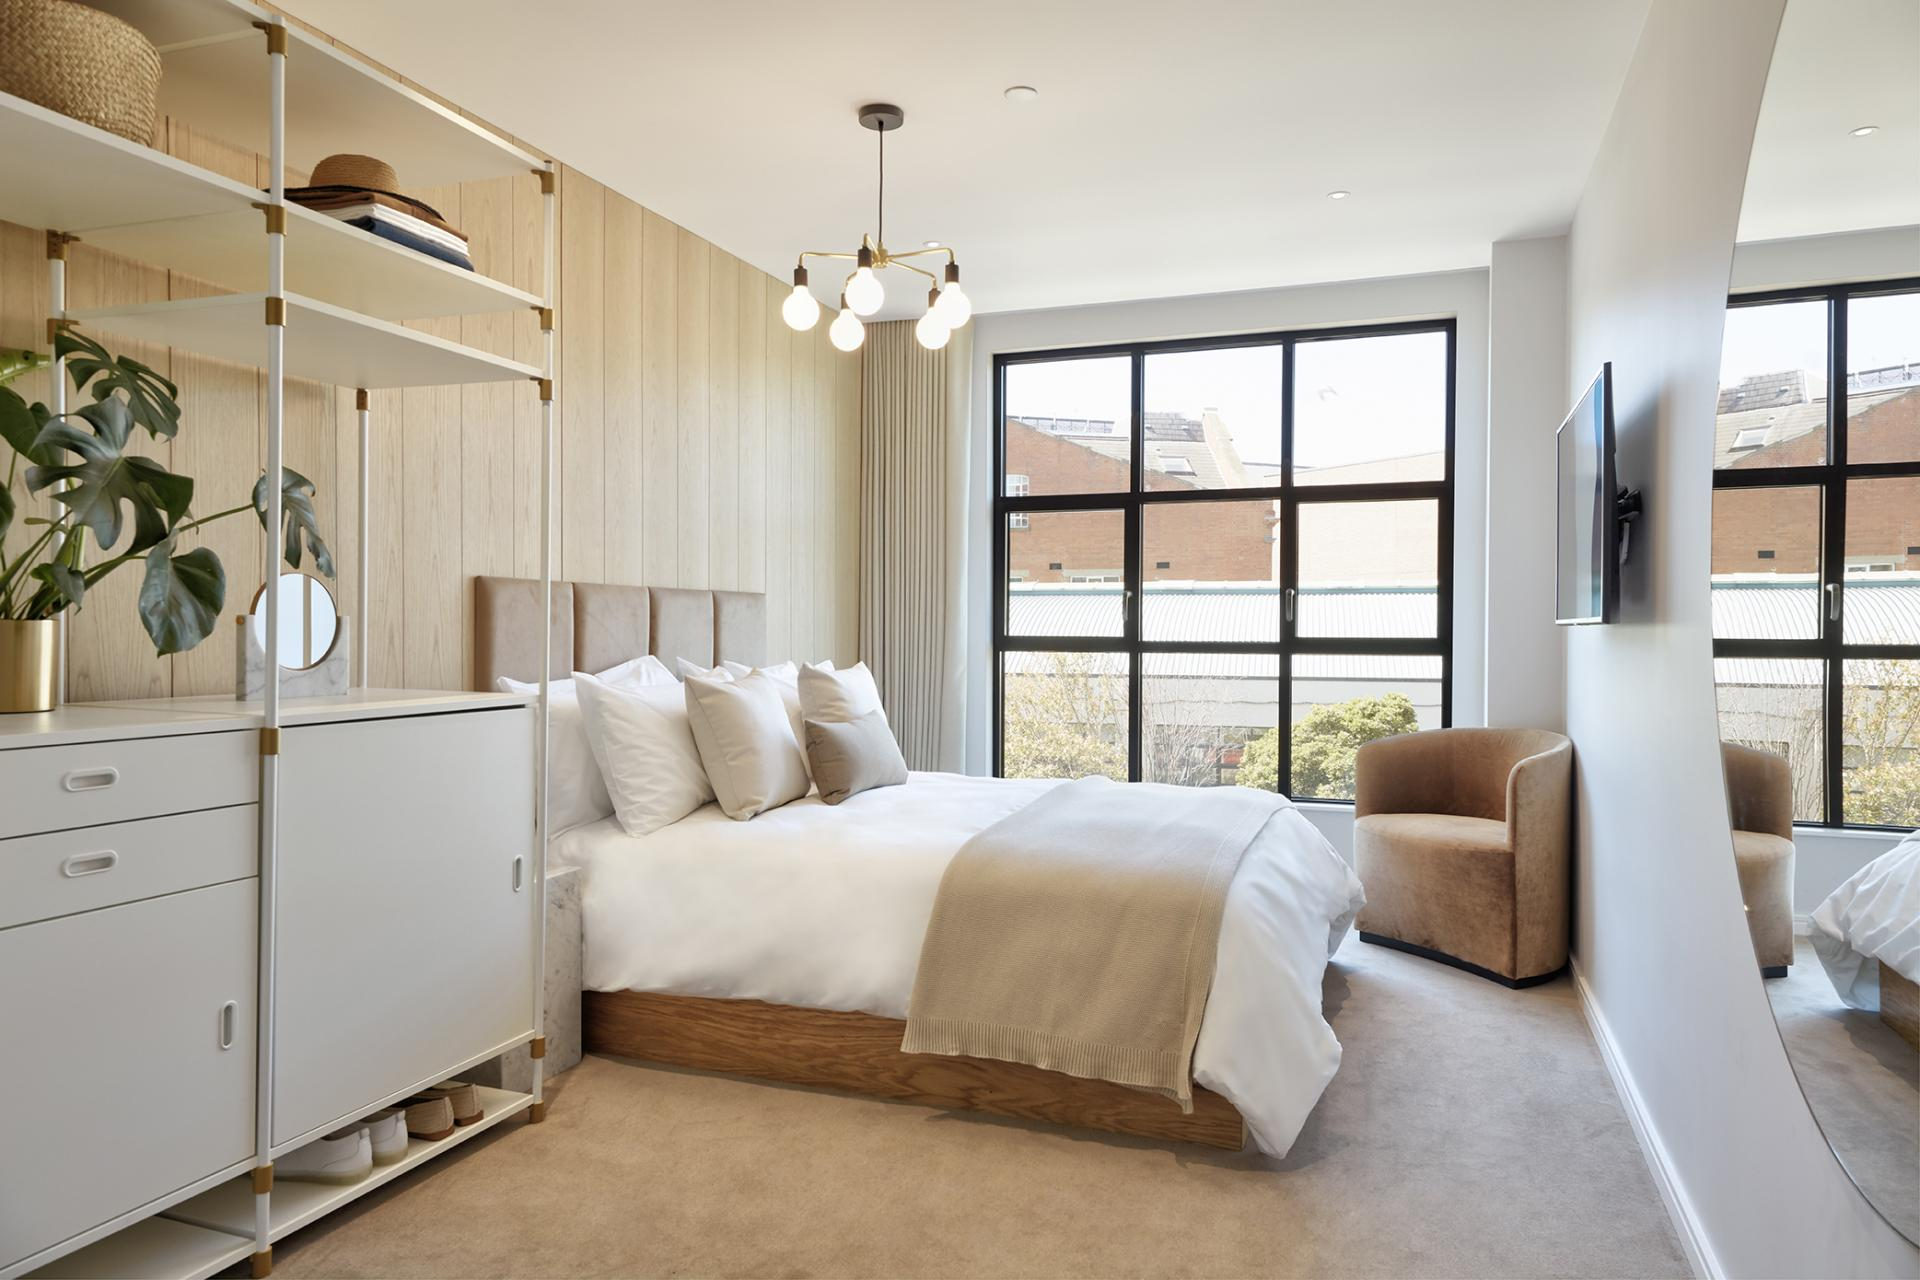 Bedroom storage at STAY Camden Serviced Apartments